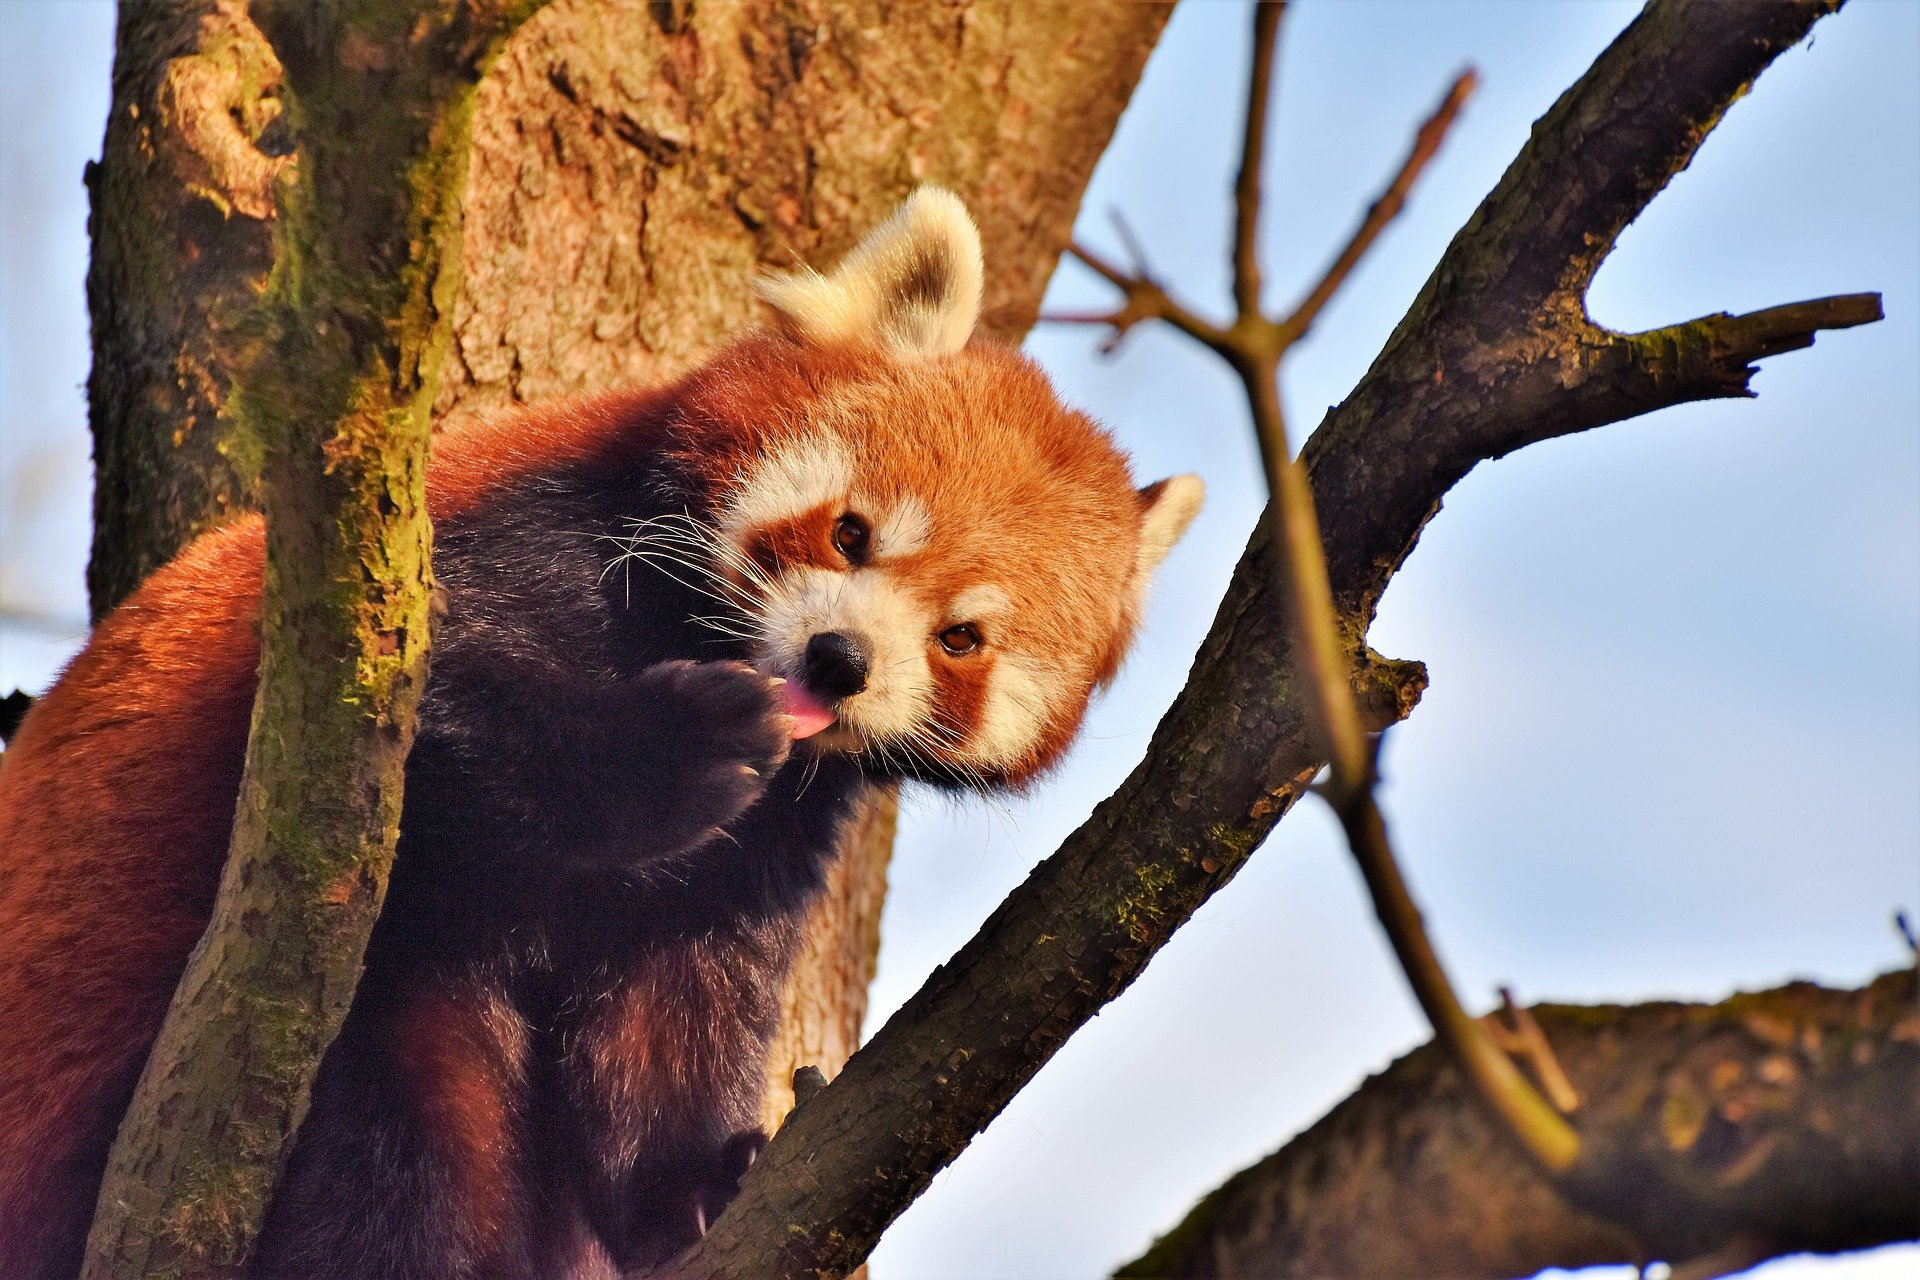 Red Panda at Macao Giant Panda Pavilion